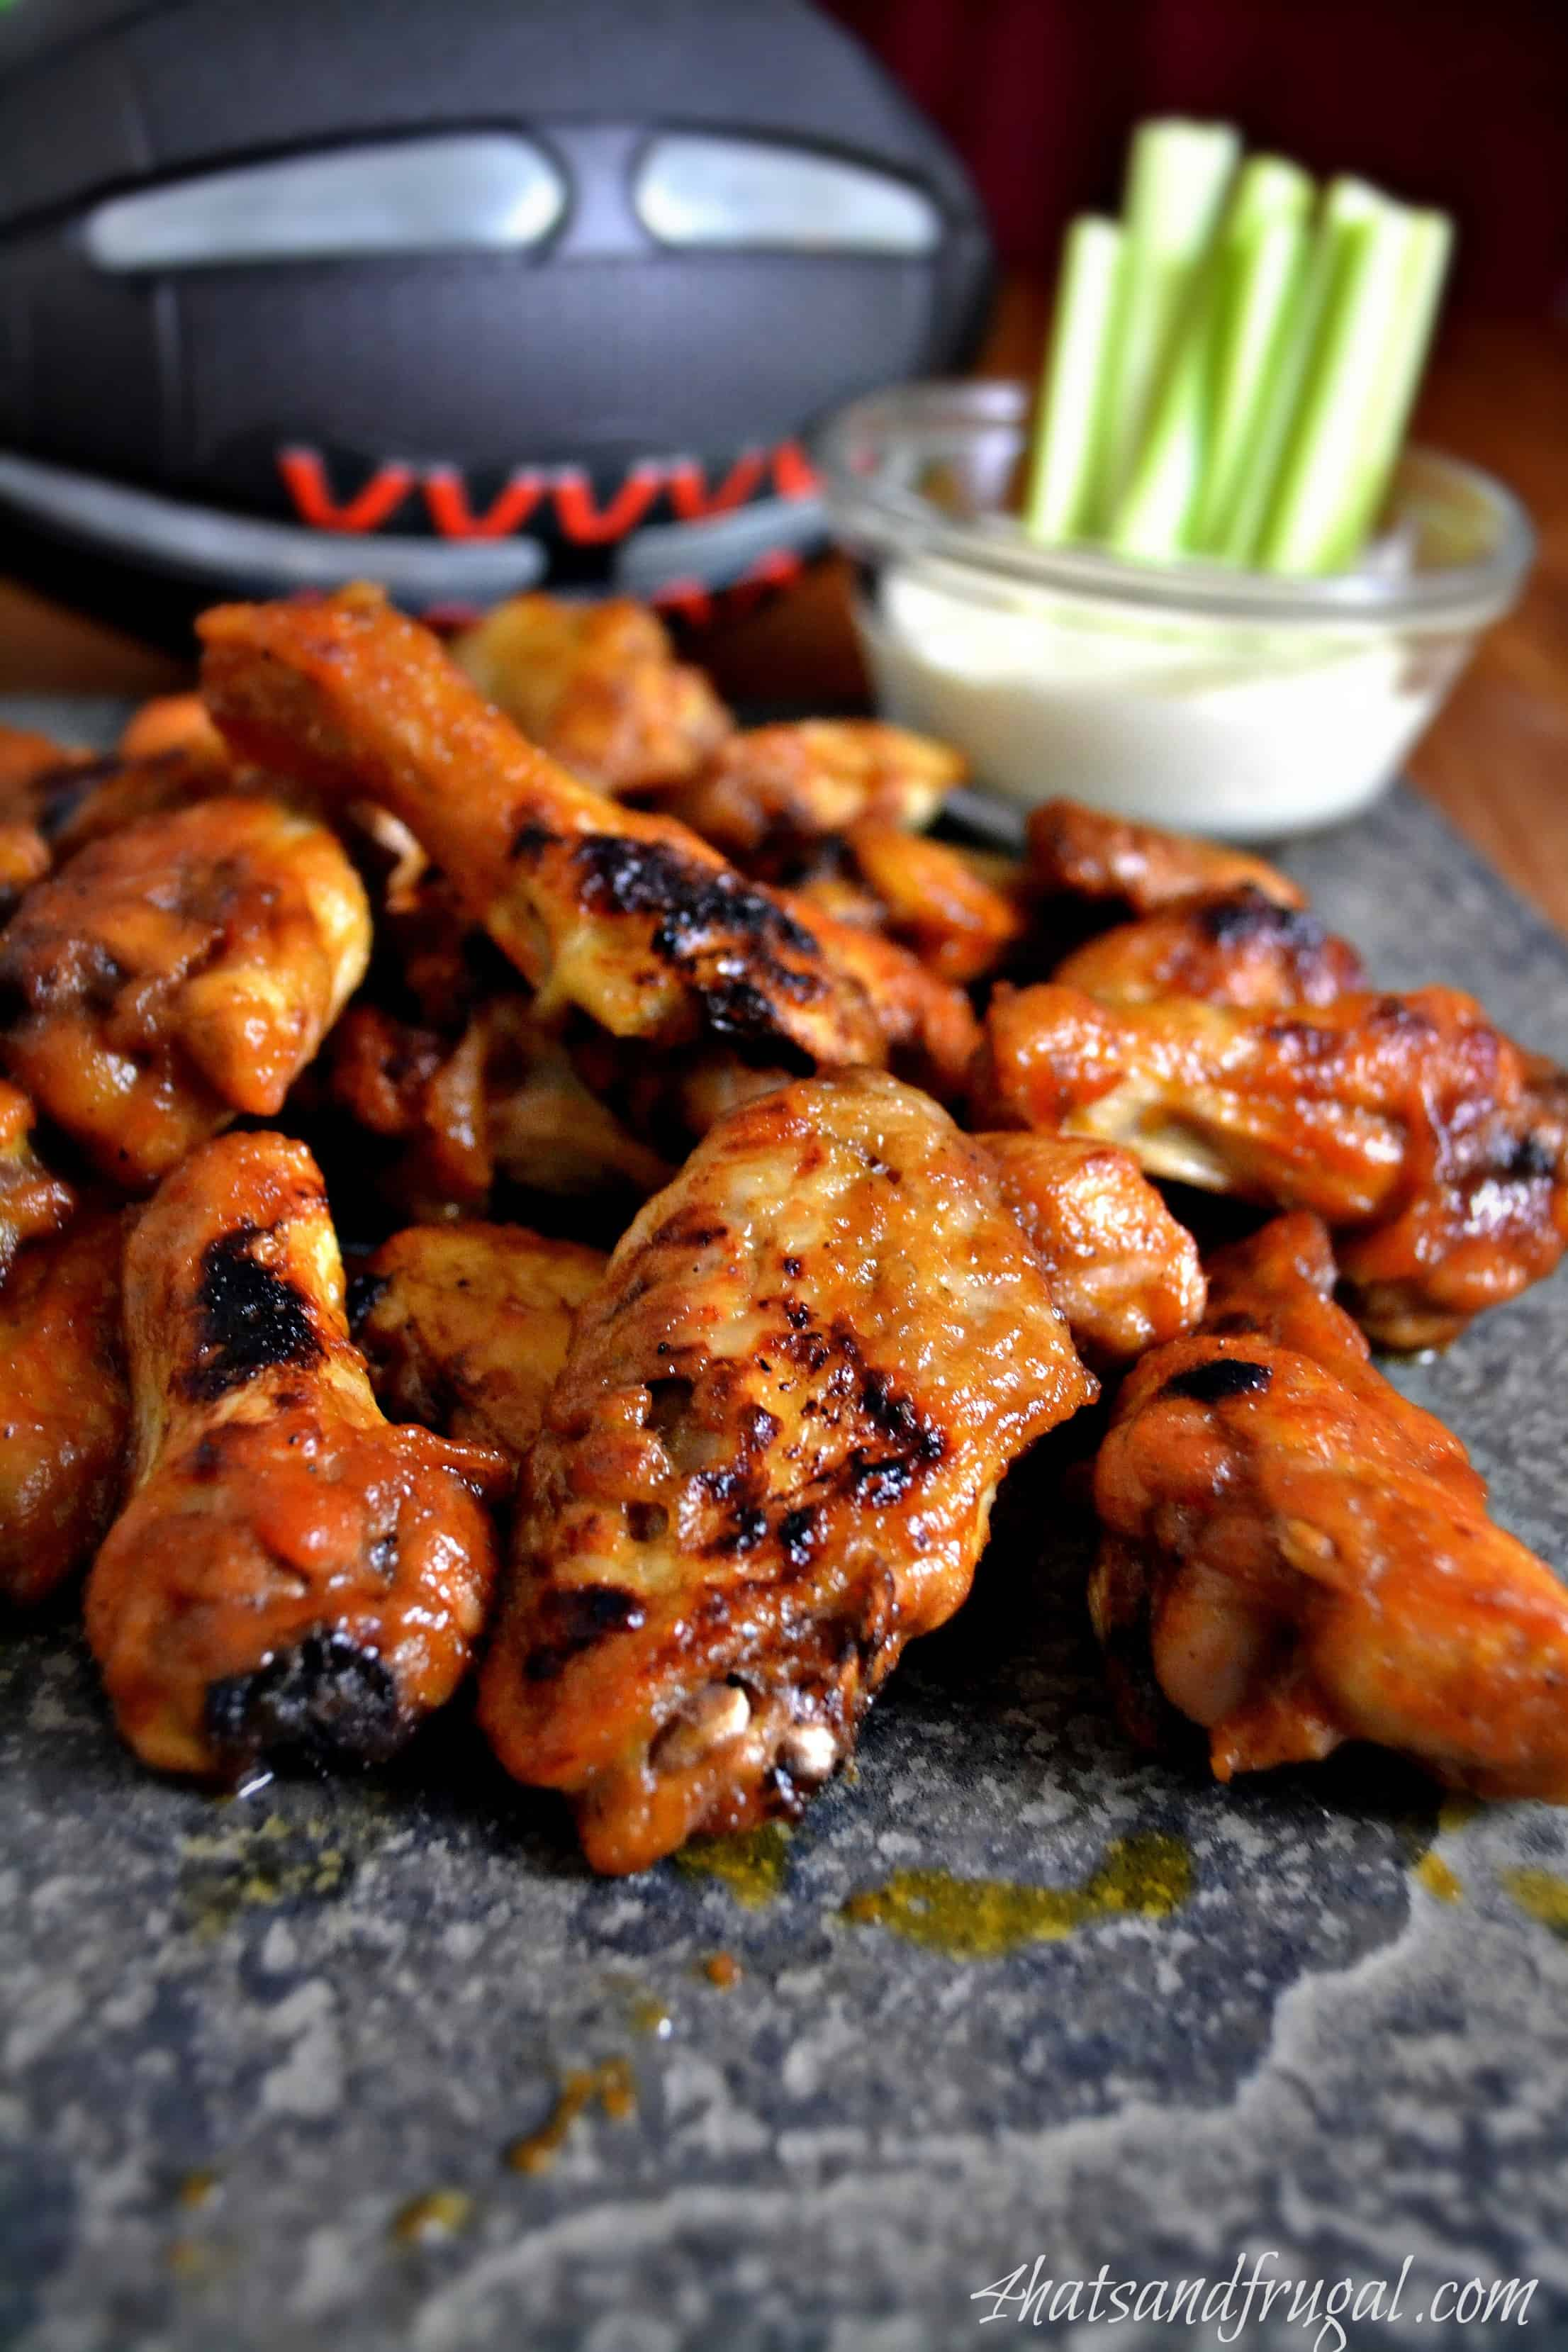 hot wings using cranberry sauce and sriracha